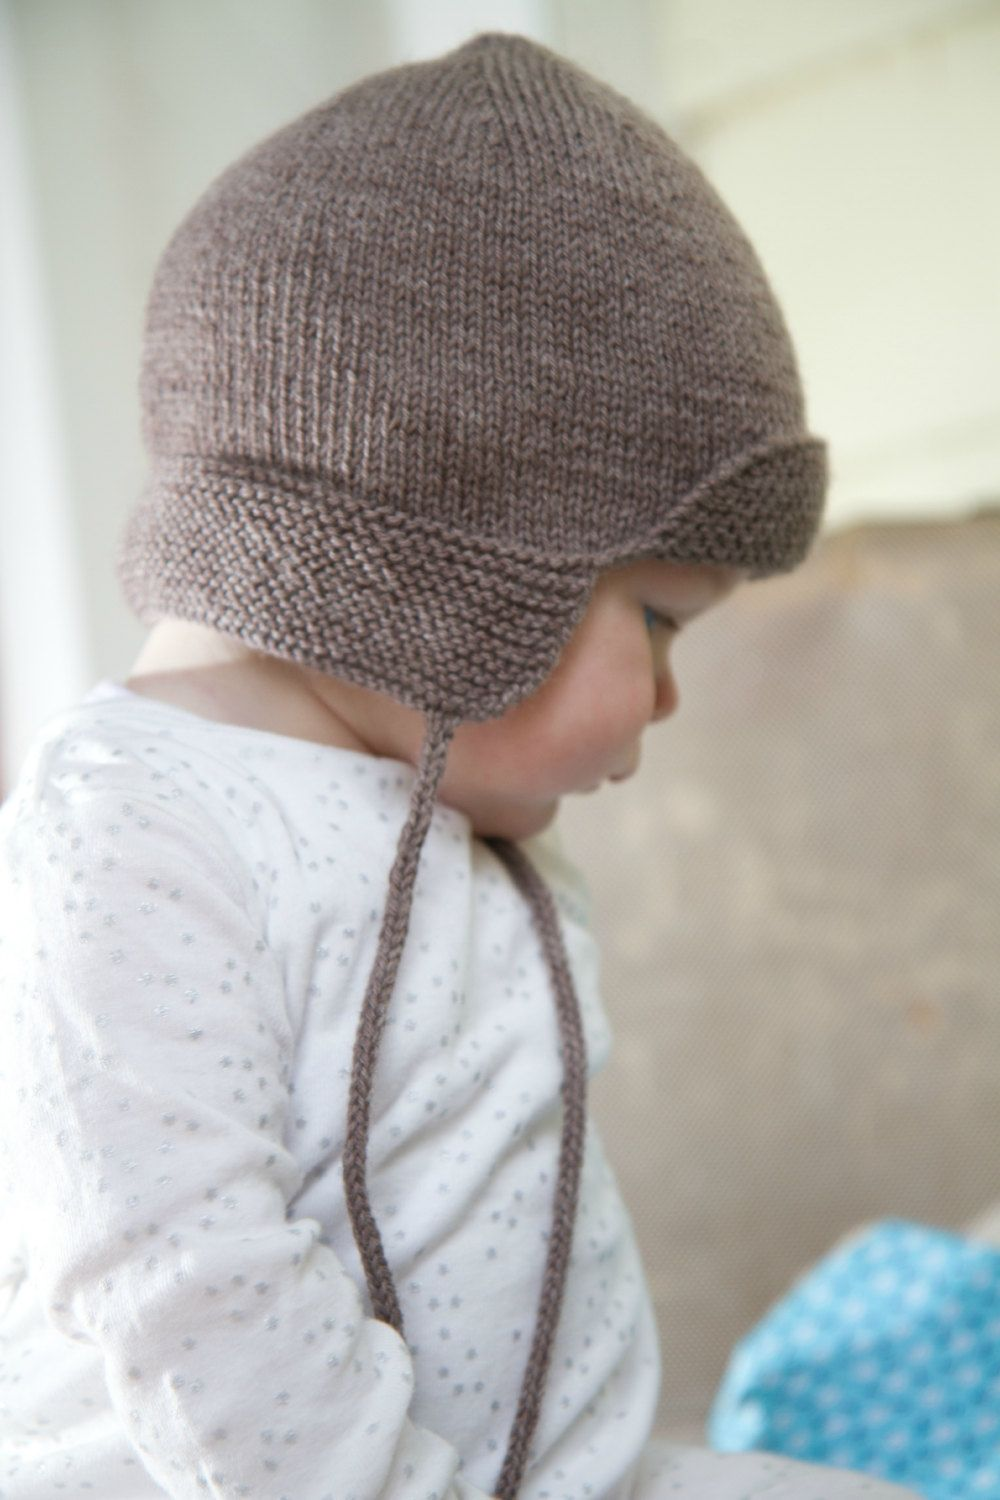 4ply baby hunter hat pattern baby cakes by little cupcakes 4ply baby hunter hat pattern baby cakes by little cupcakes bc47 bankloansurffo Image collections